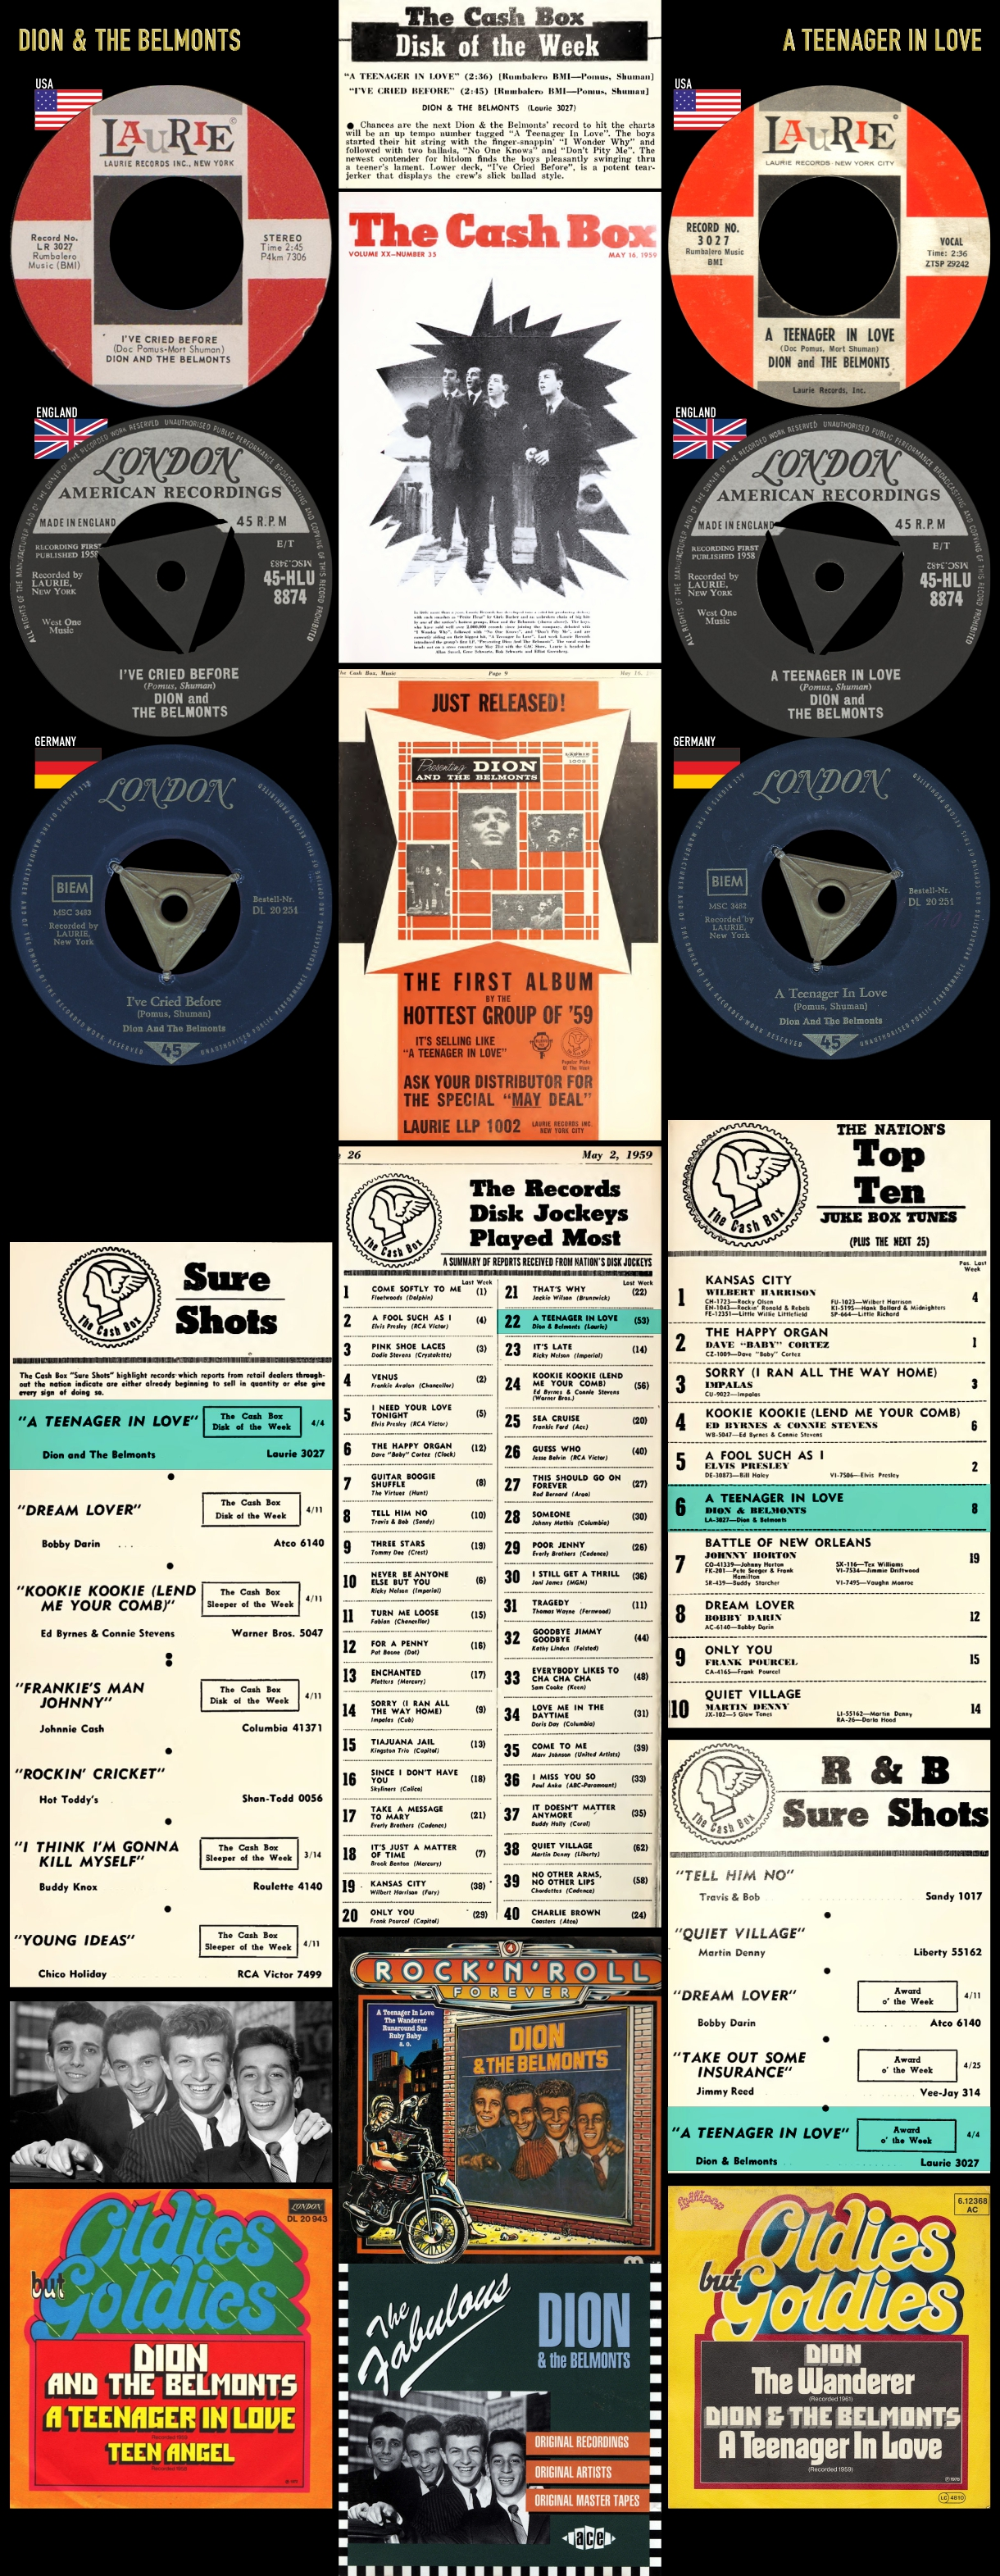 590418_Dion & The Belmonts_A Teenager In Love_I've Cried Before